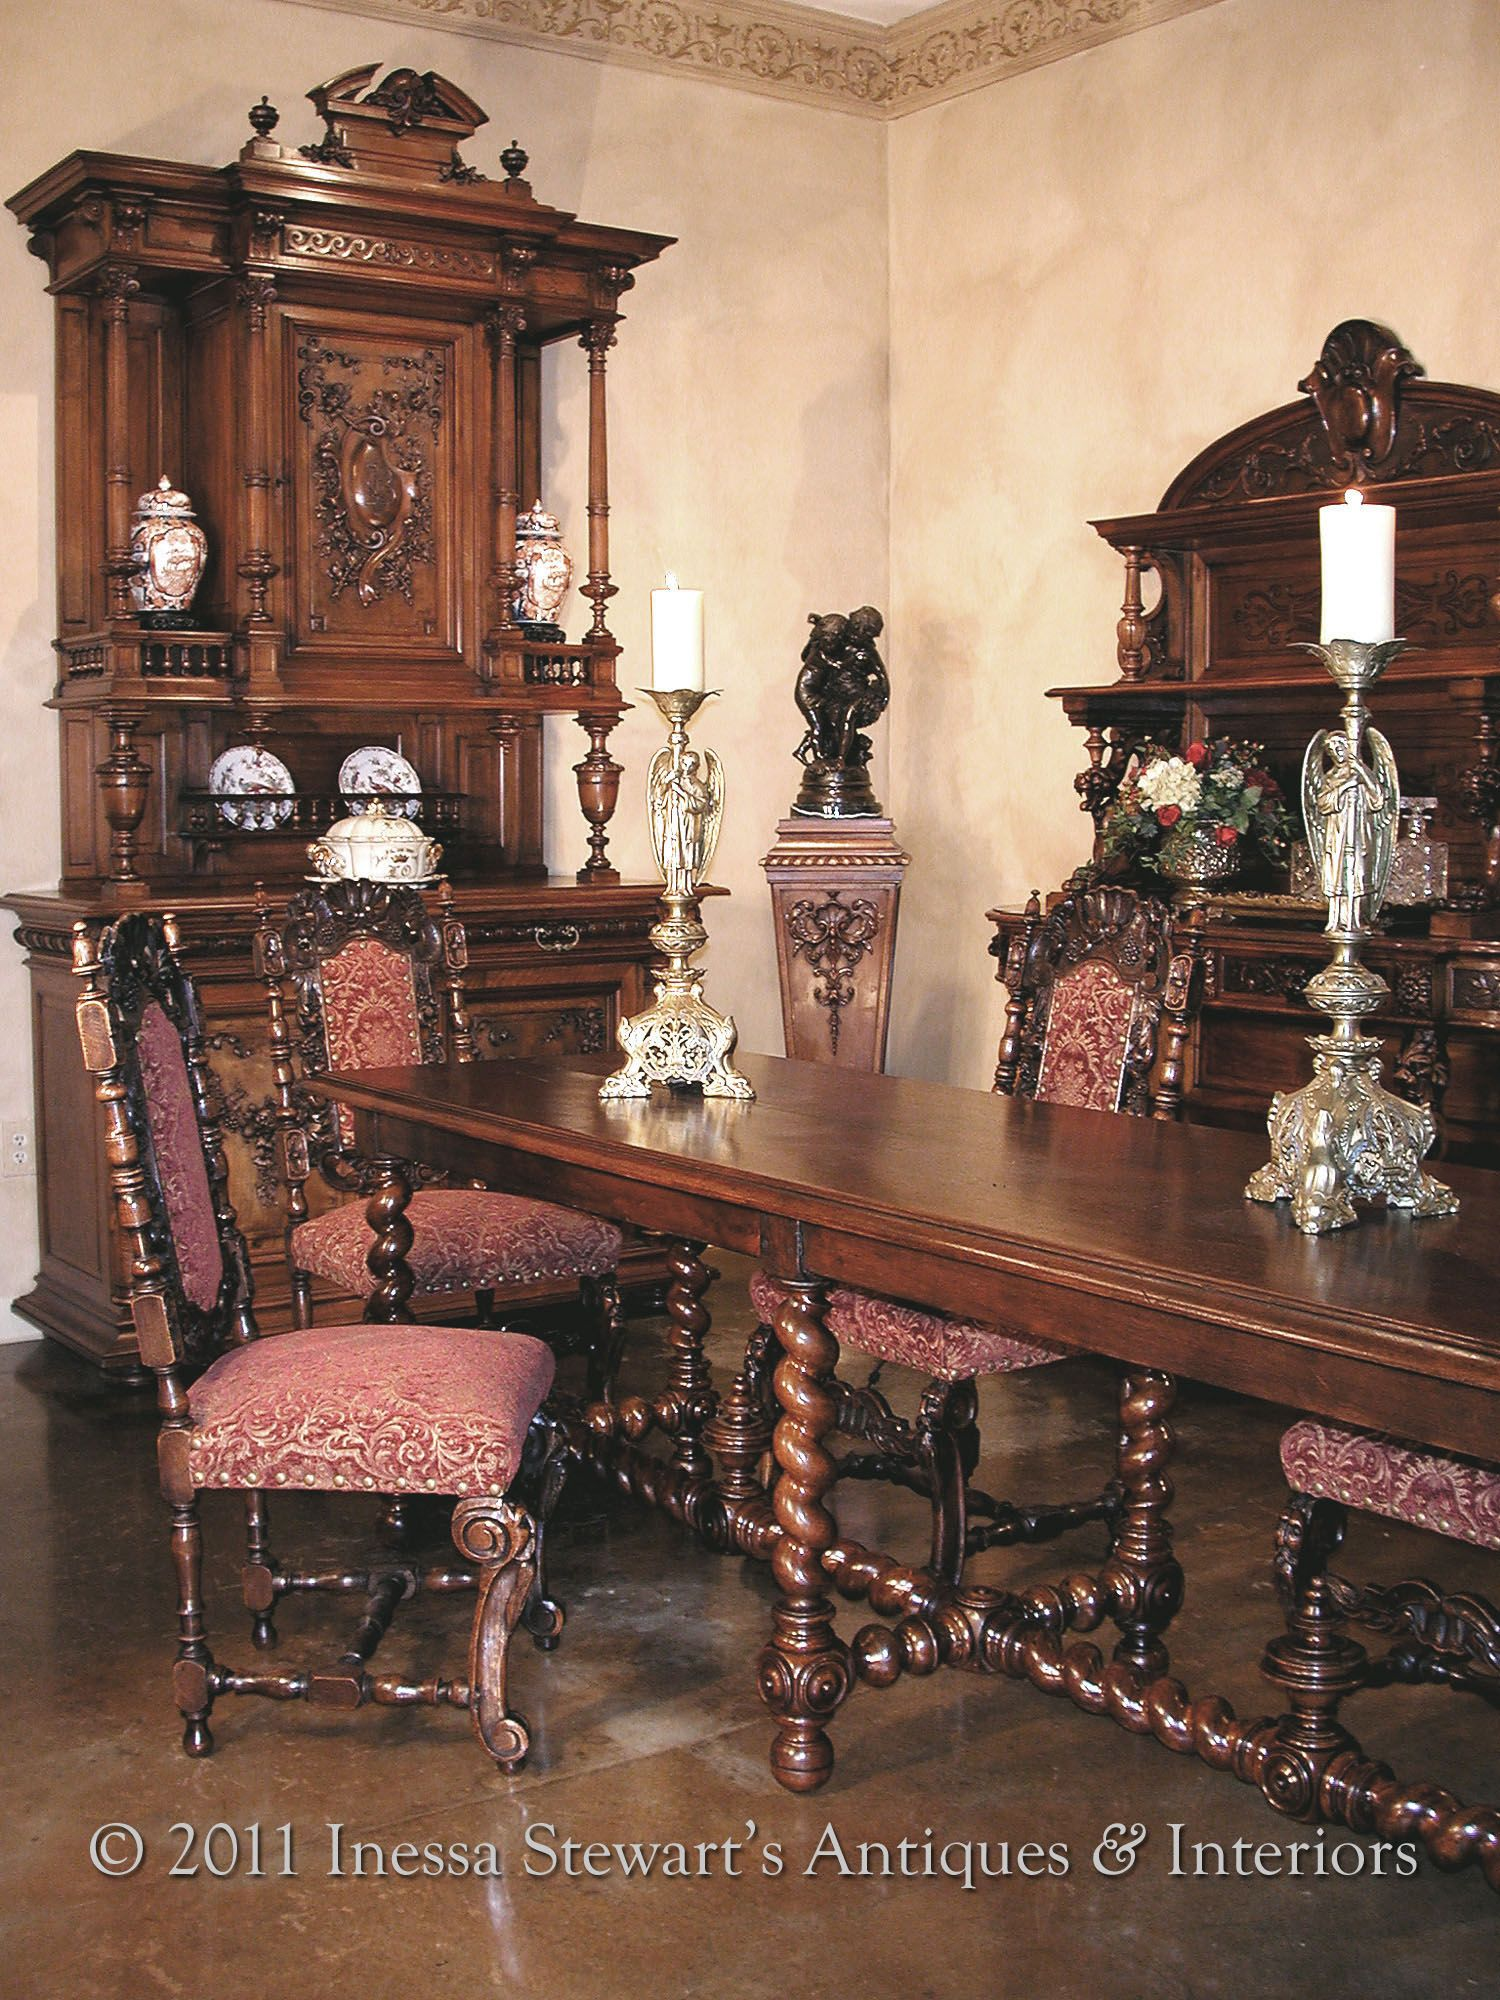 Antique Renaissance Style Dining Room To Most Of Us French Furniture Means Furnishings From The 18th And 19th Century So We Conjure Up Mental